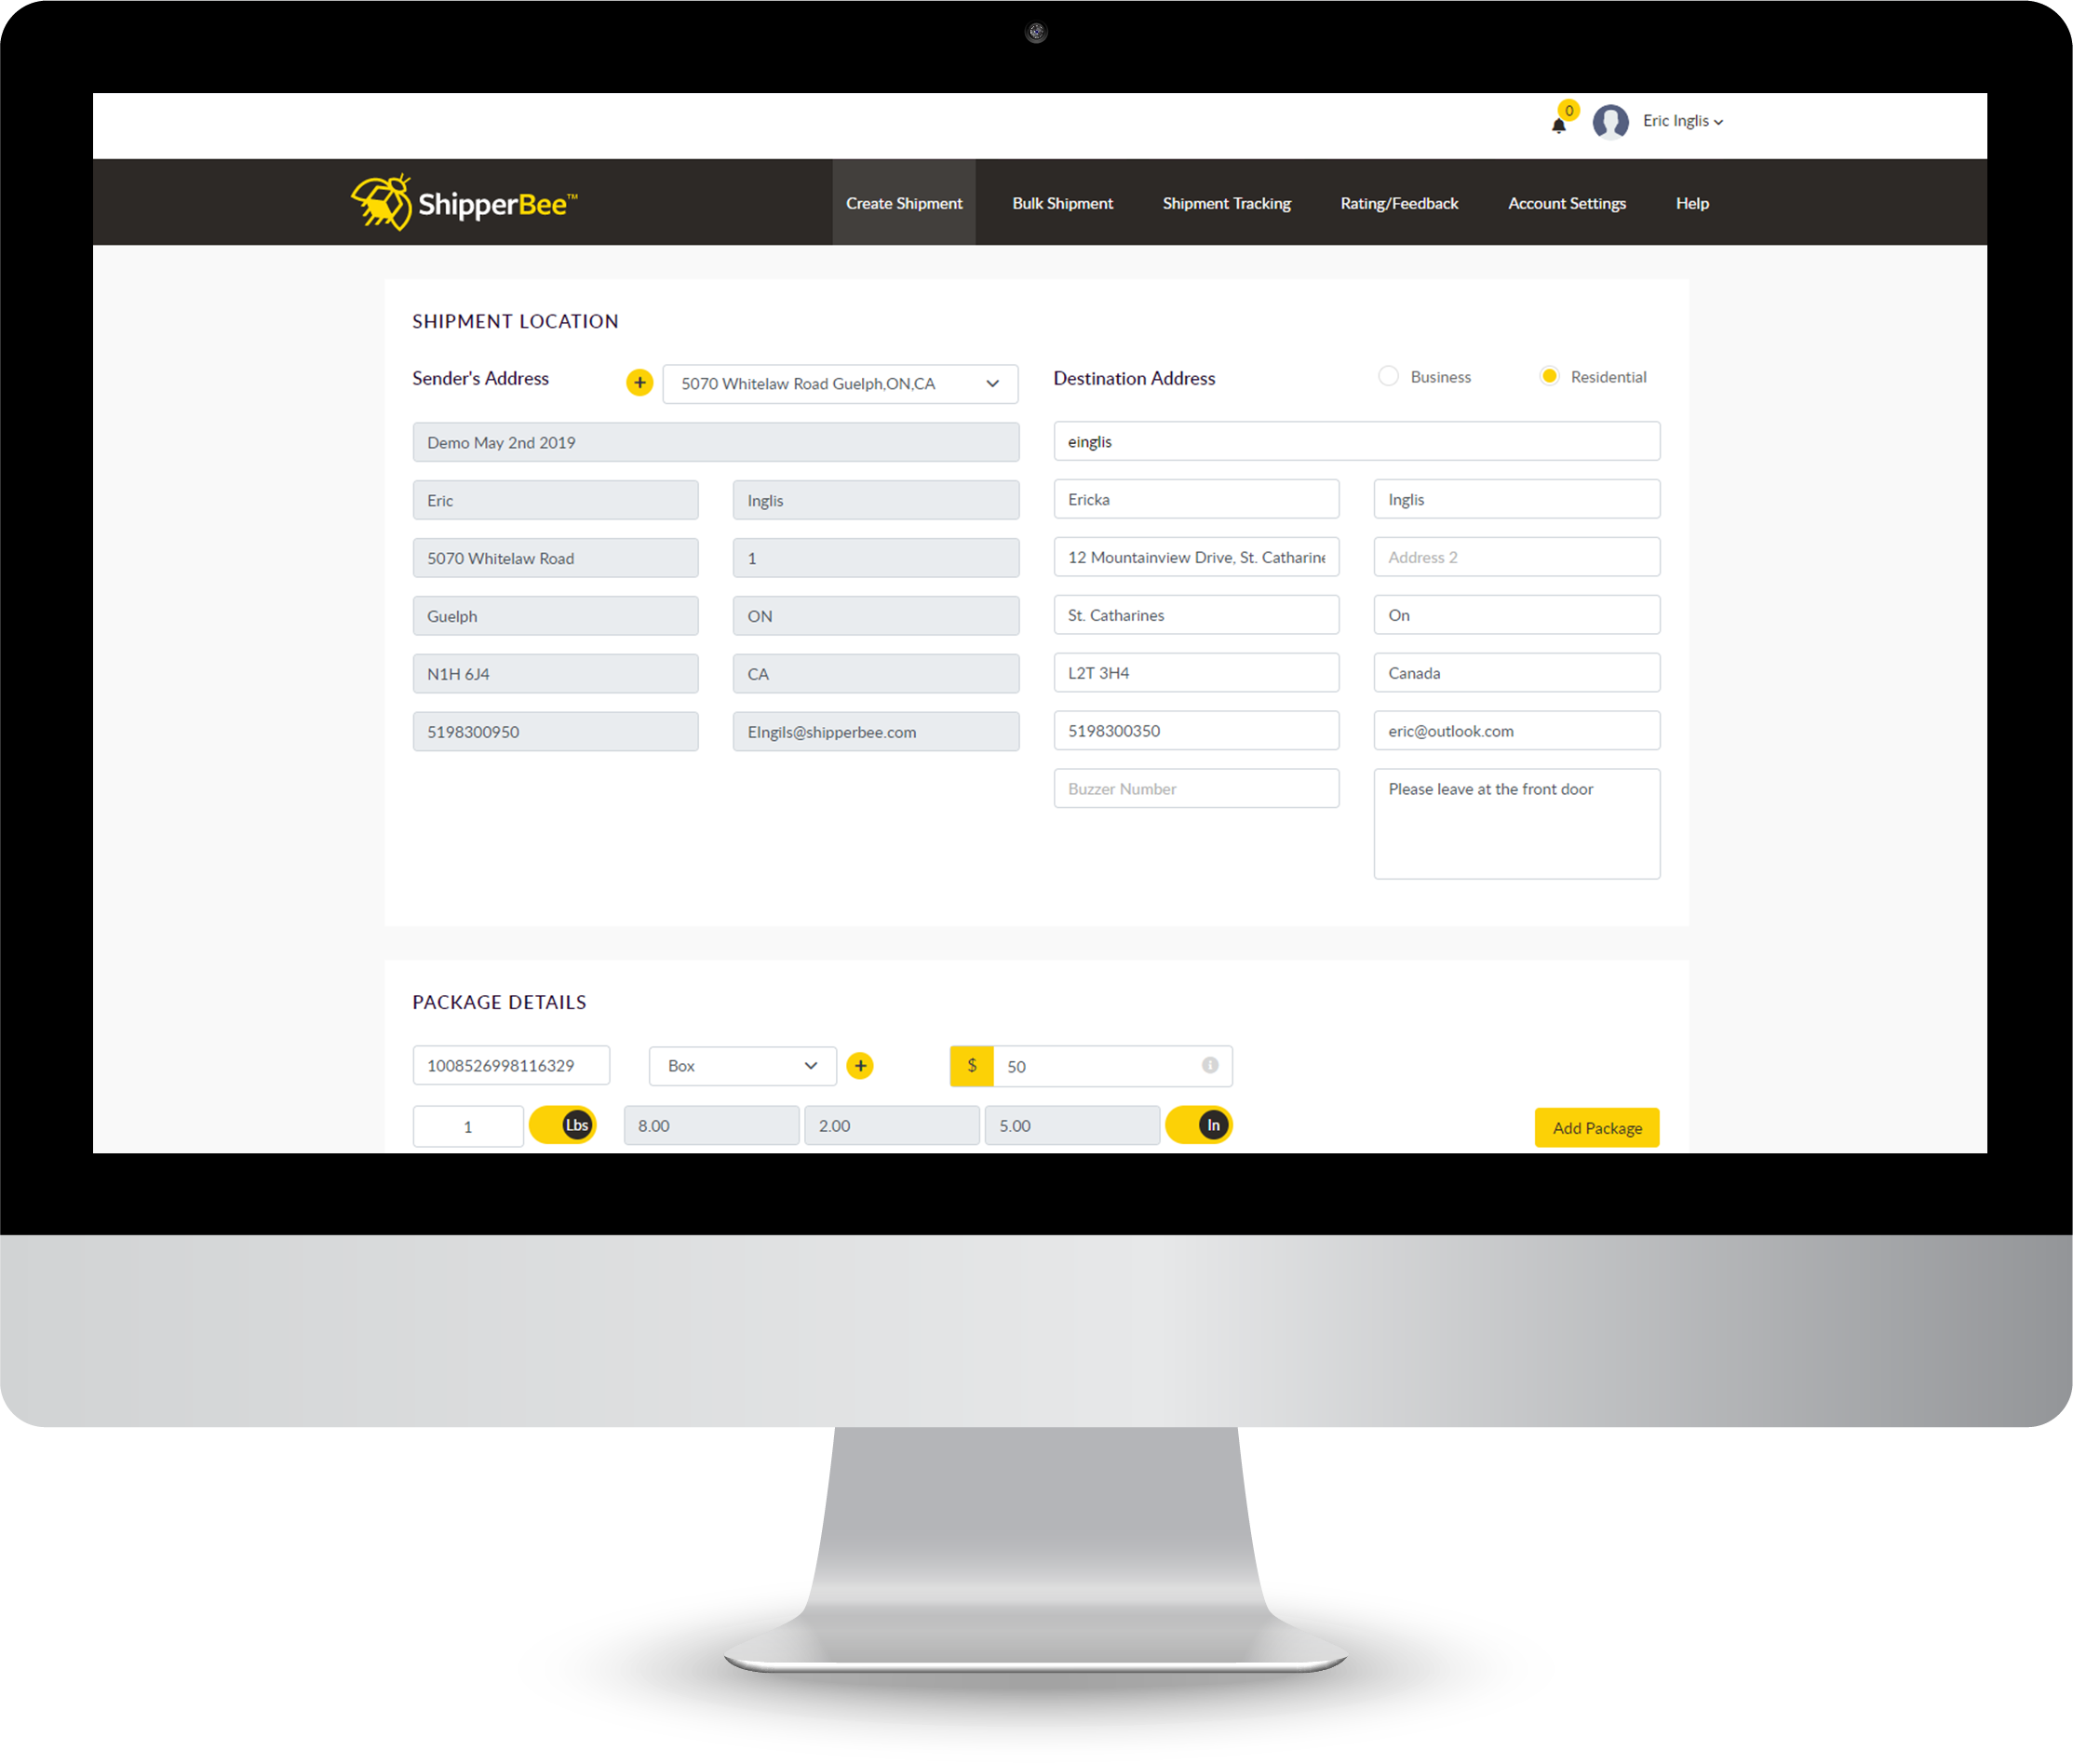 ShipperBee Business Portal for Shipping